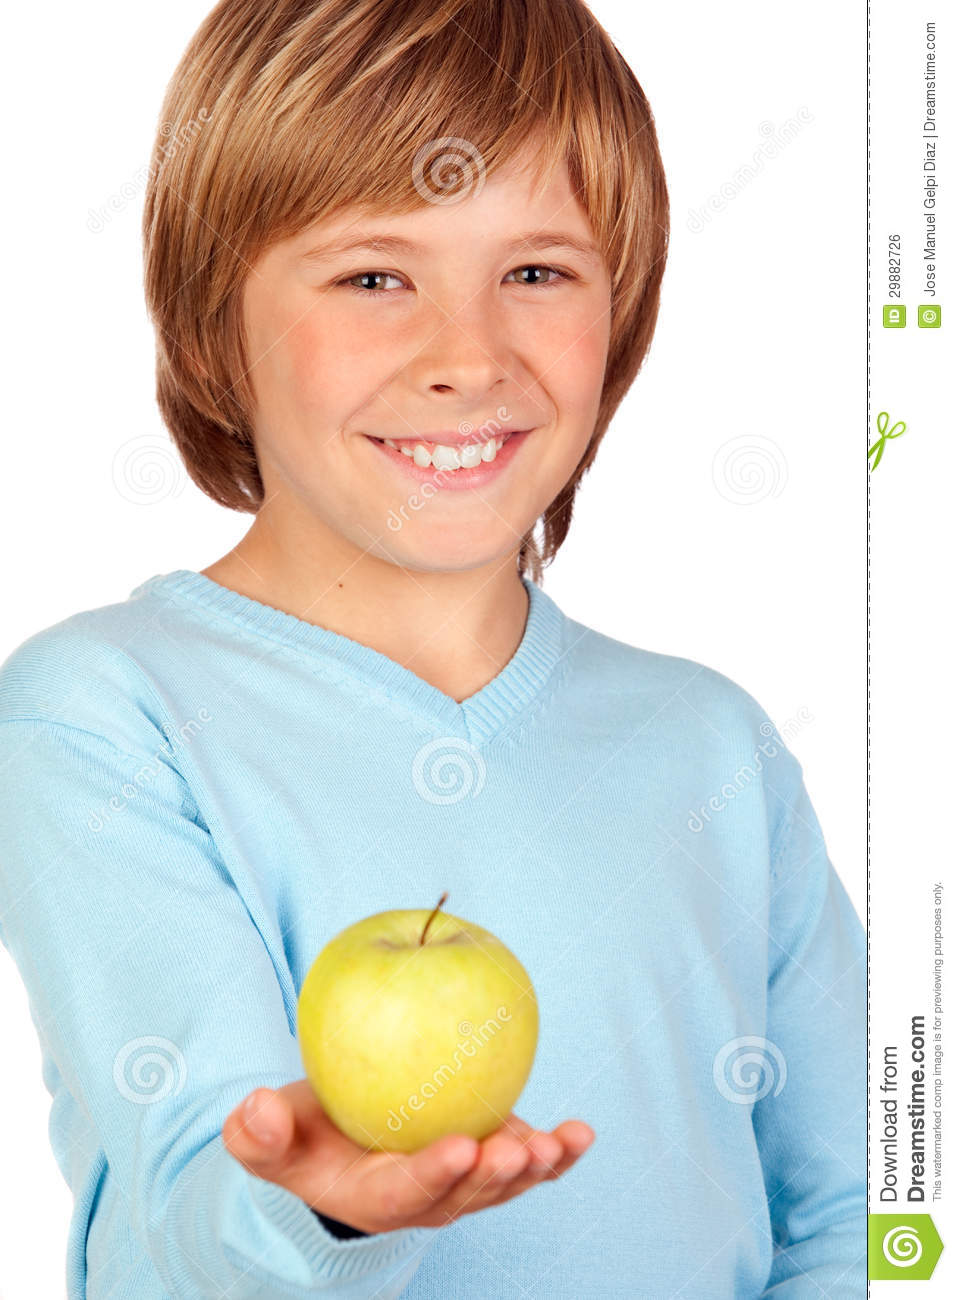 Preteen Boy With A Yellow Apple Royalty Free Stock Image ...: http://www.dreamstime.com/royalty-free-stock-image-preteen-boy-yellow-apple-isolated-white-background-image29882726